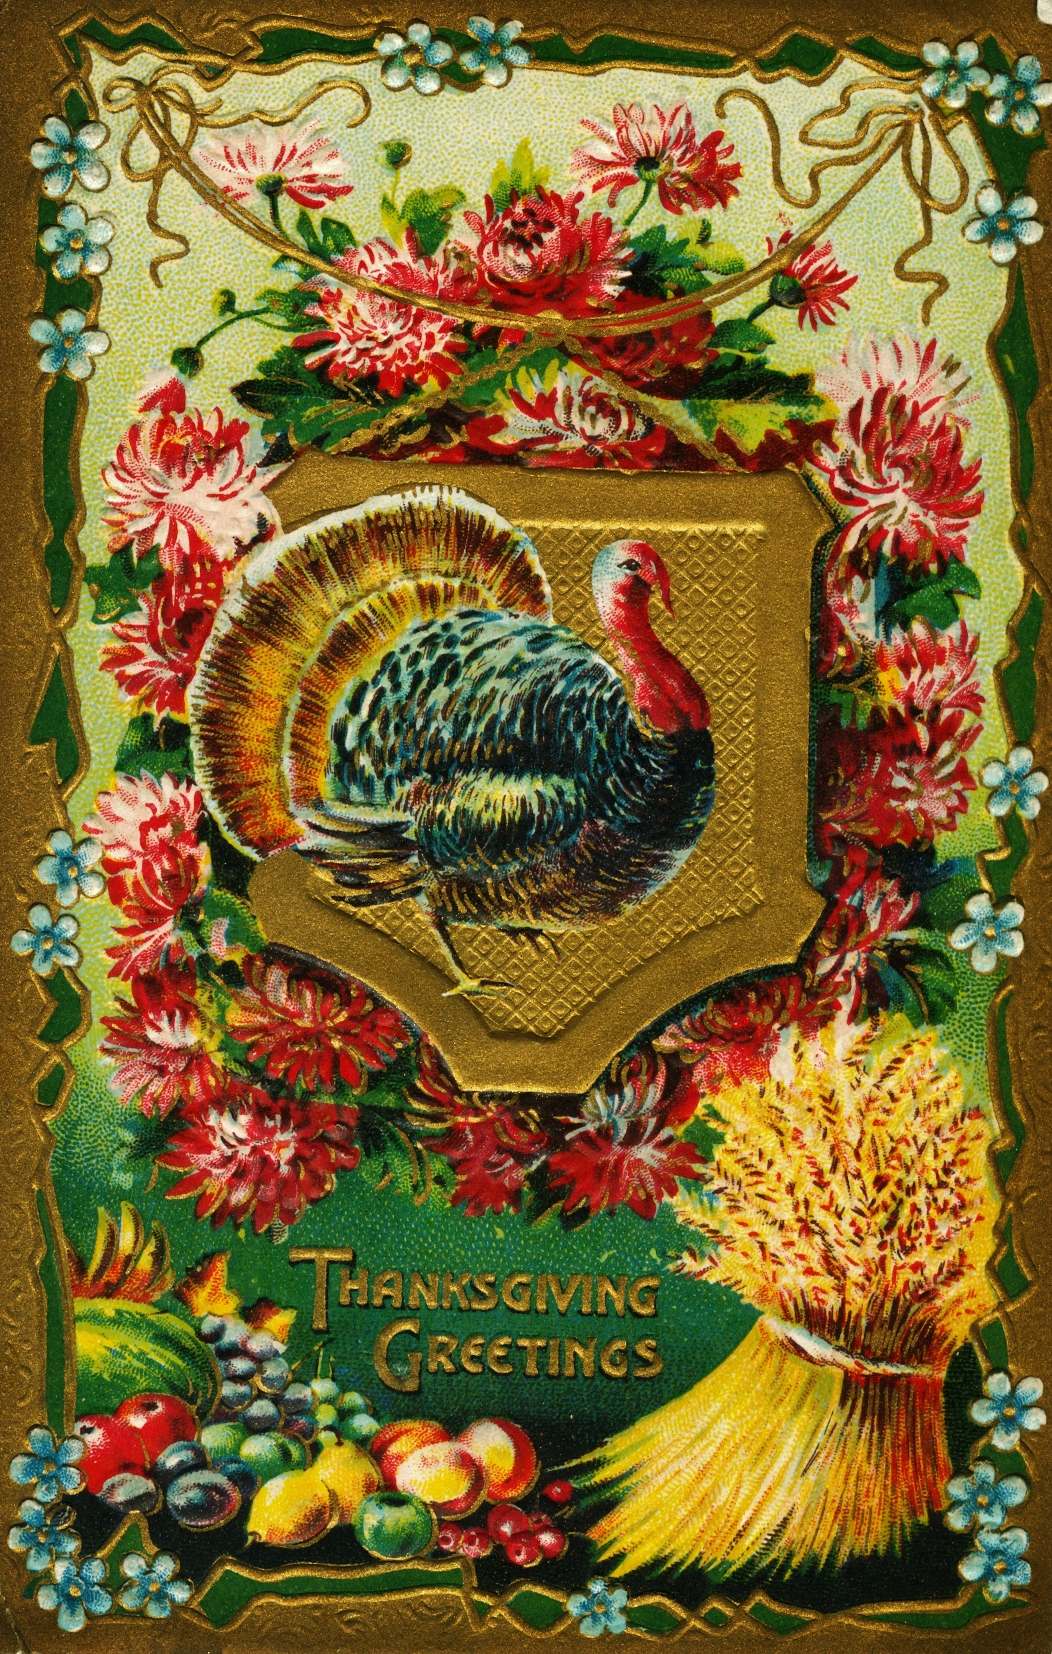 Postcard Thanksgiving.jpg